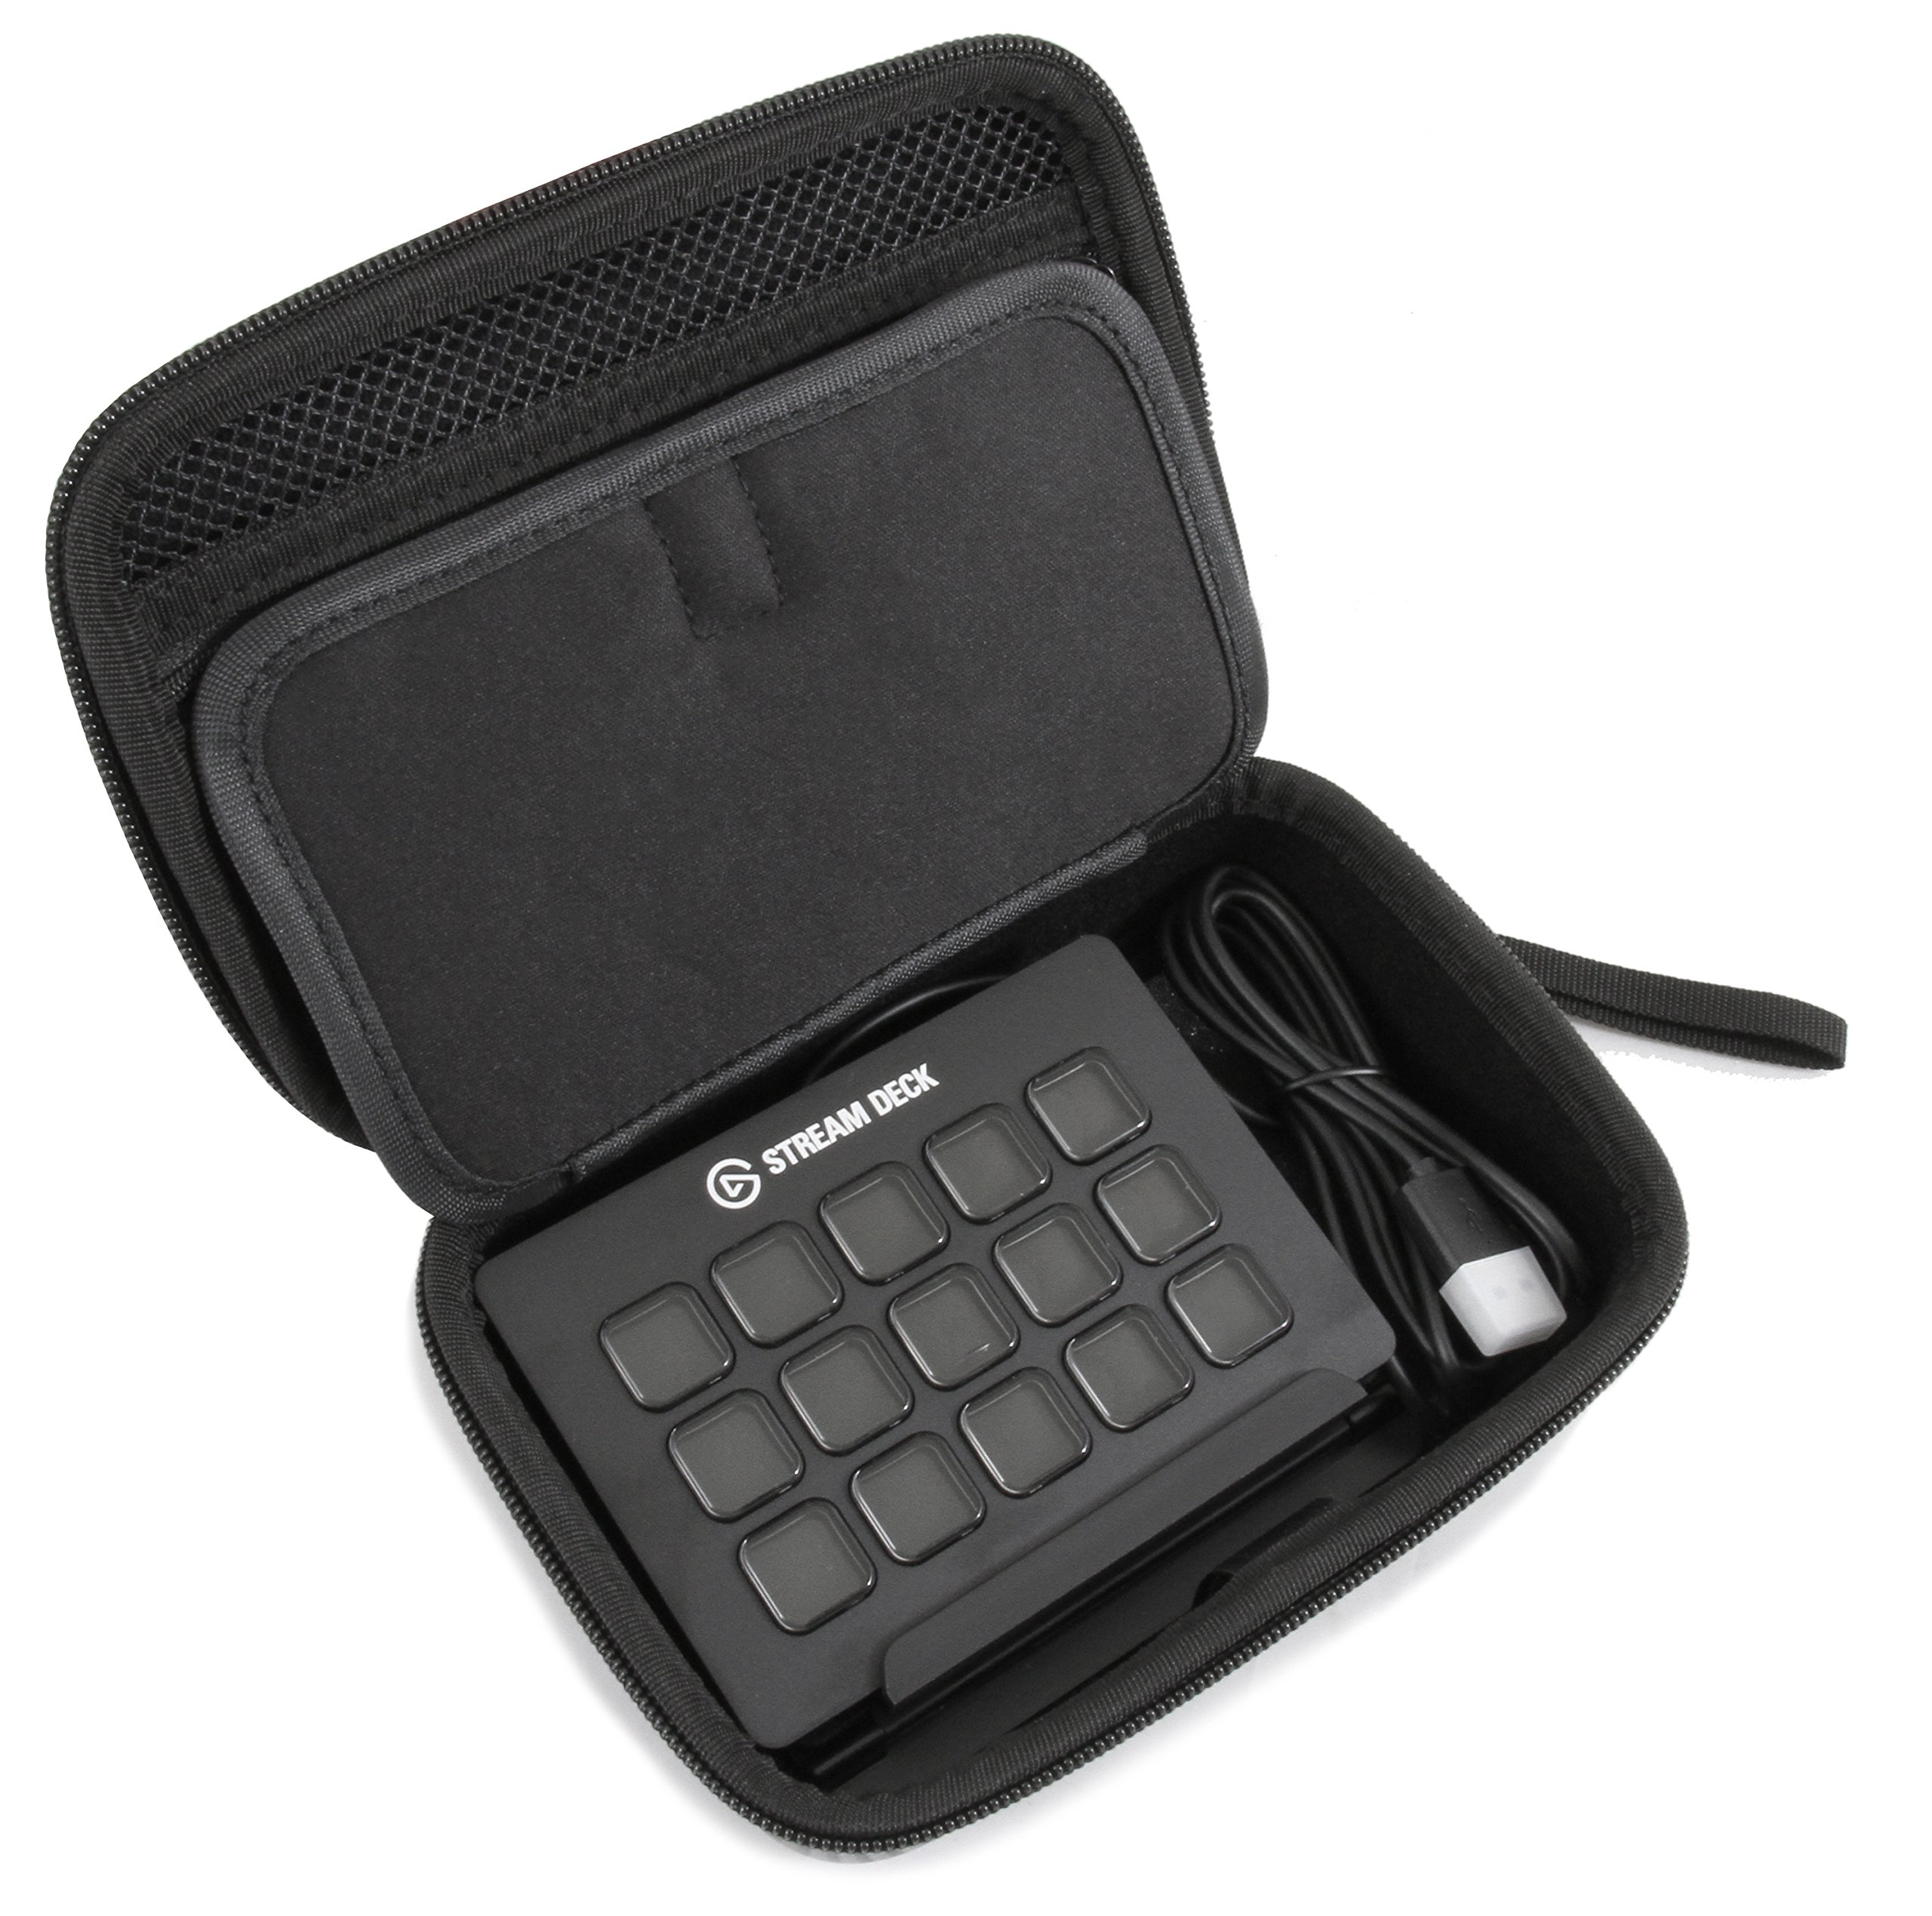 CASEMATIX Rugged EVA Travel Case Fits Elgato Stream Deck and Adjustable Stand, Elgato Game Capture HD60, Elgato Chat Link and Other Select Elgato Accessories – Wrist Strap Included